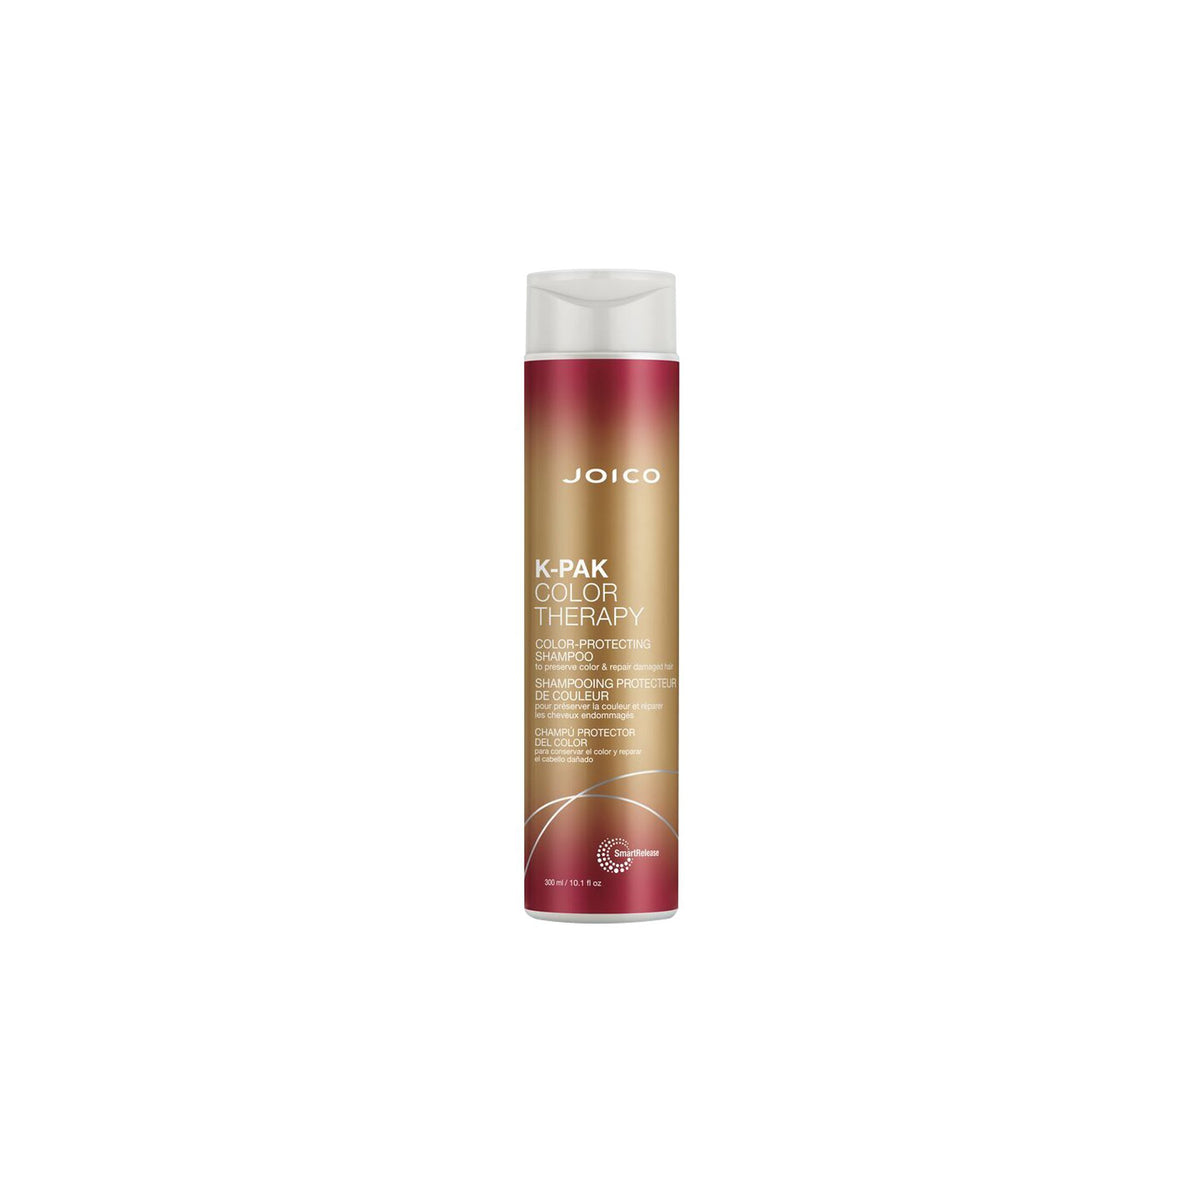 Joico K Pak Colour Shampoo 300ml